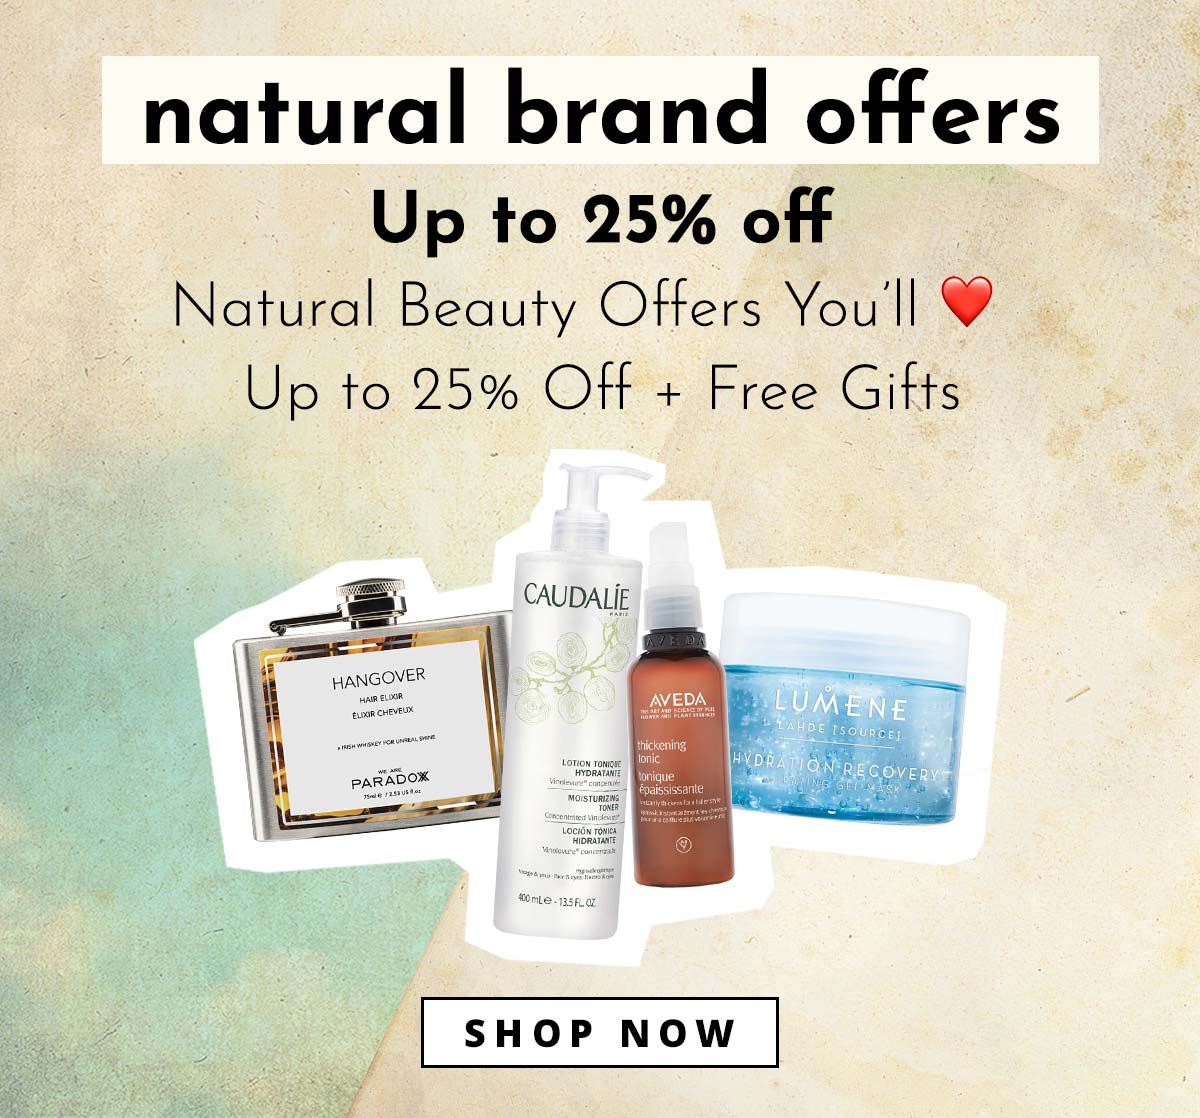 Natural Brand offers